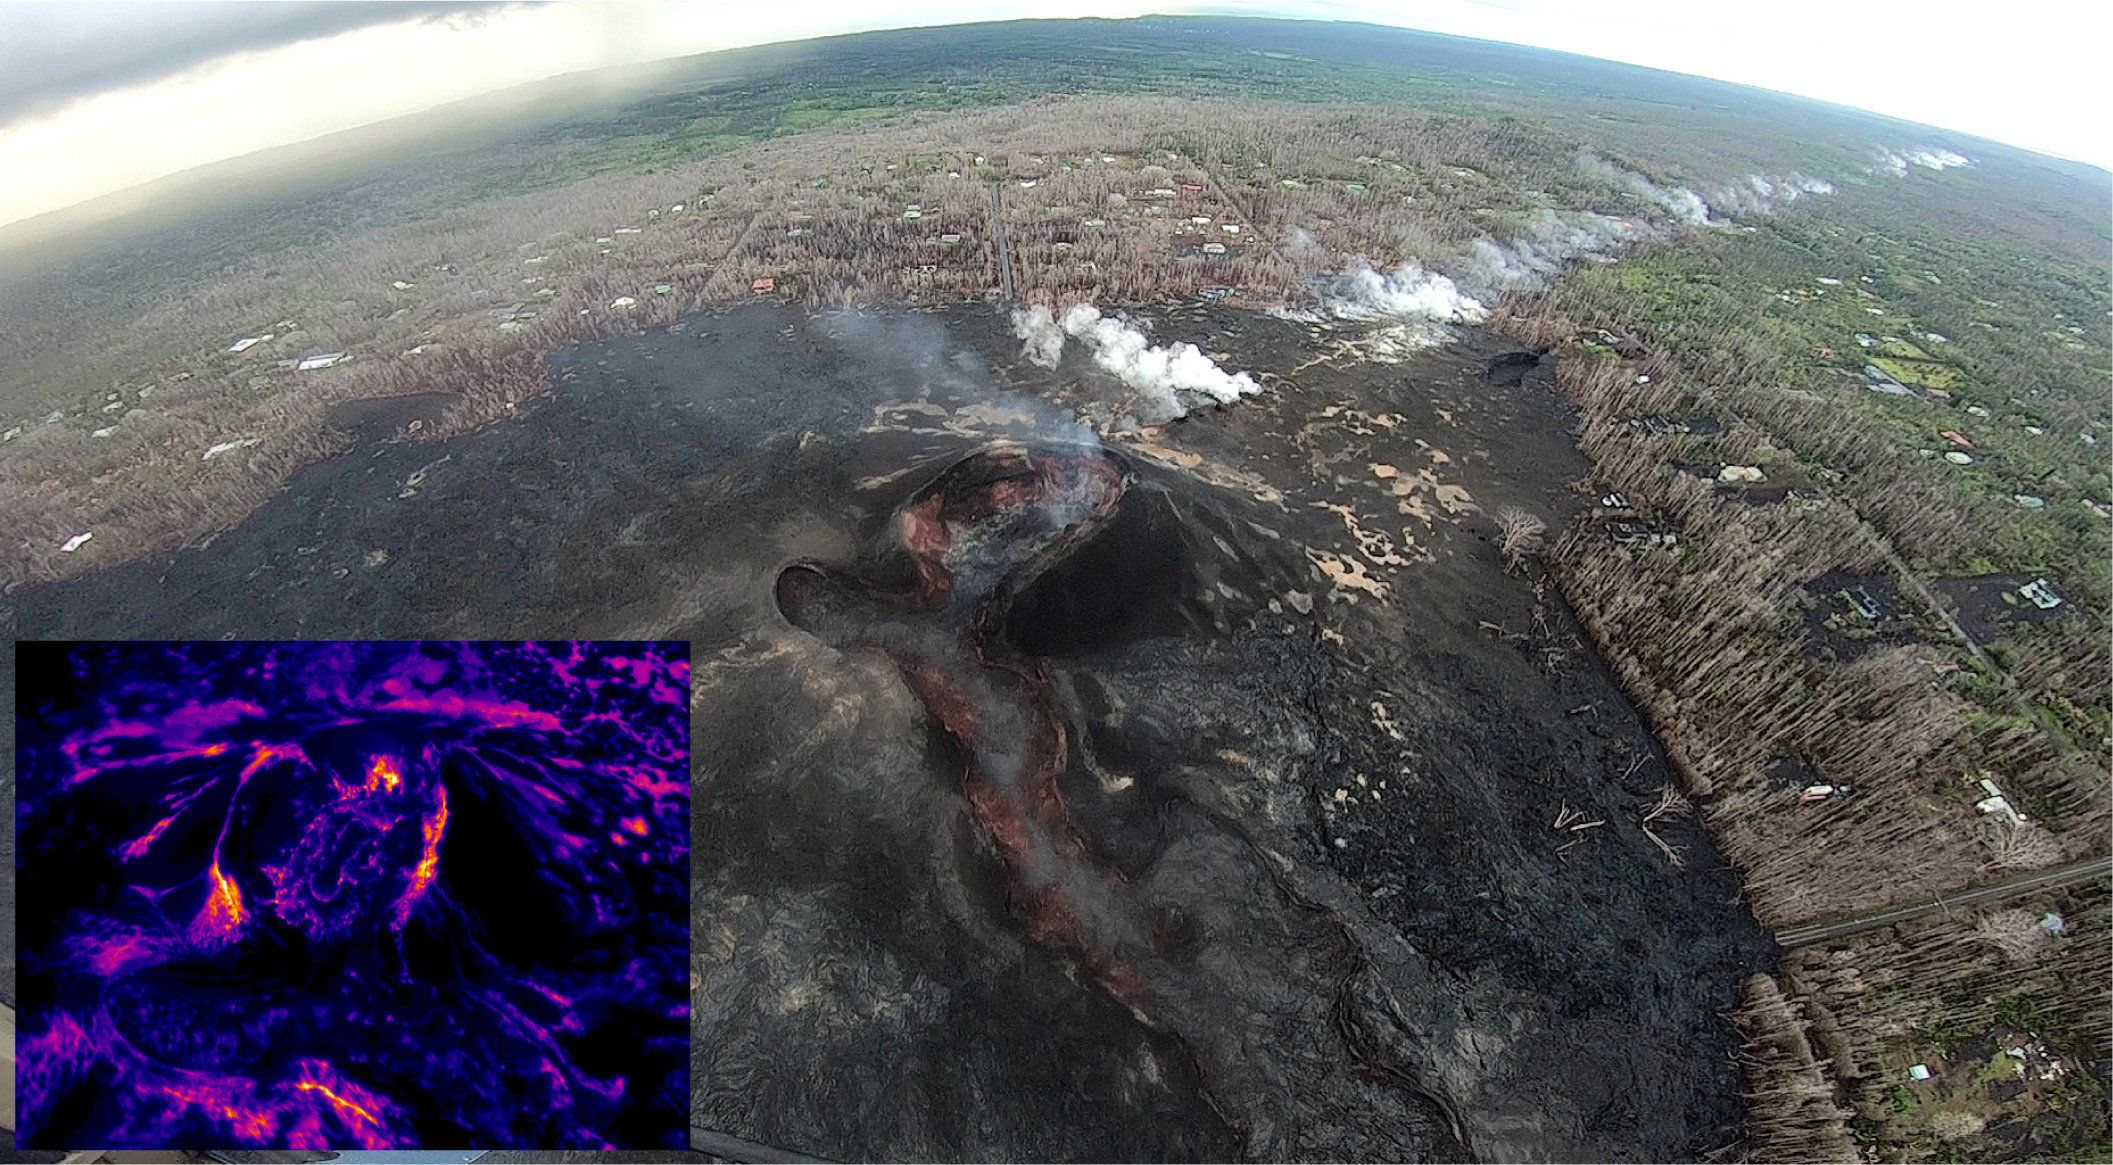 This wide-angle photo shows the fissure 8 cone (center of image) and the long line of steaming areas extending uprift (west), towards the upper right corner of the image. No significant change was observed at fissure 8 during today's overflight. Thermal images (see inset lower left) show no signs of lava within the cone - the small collapse pit in the center of the crater floor is cold.